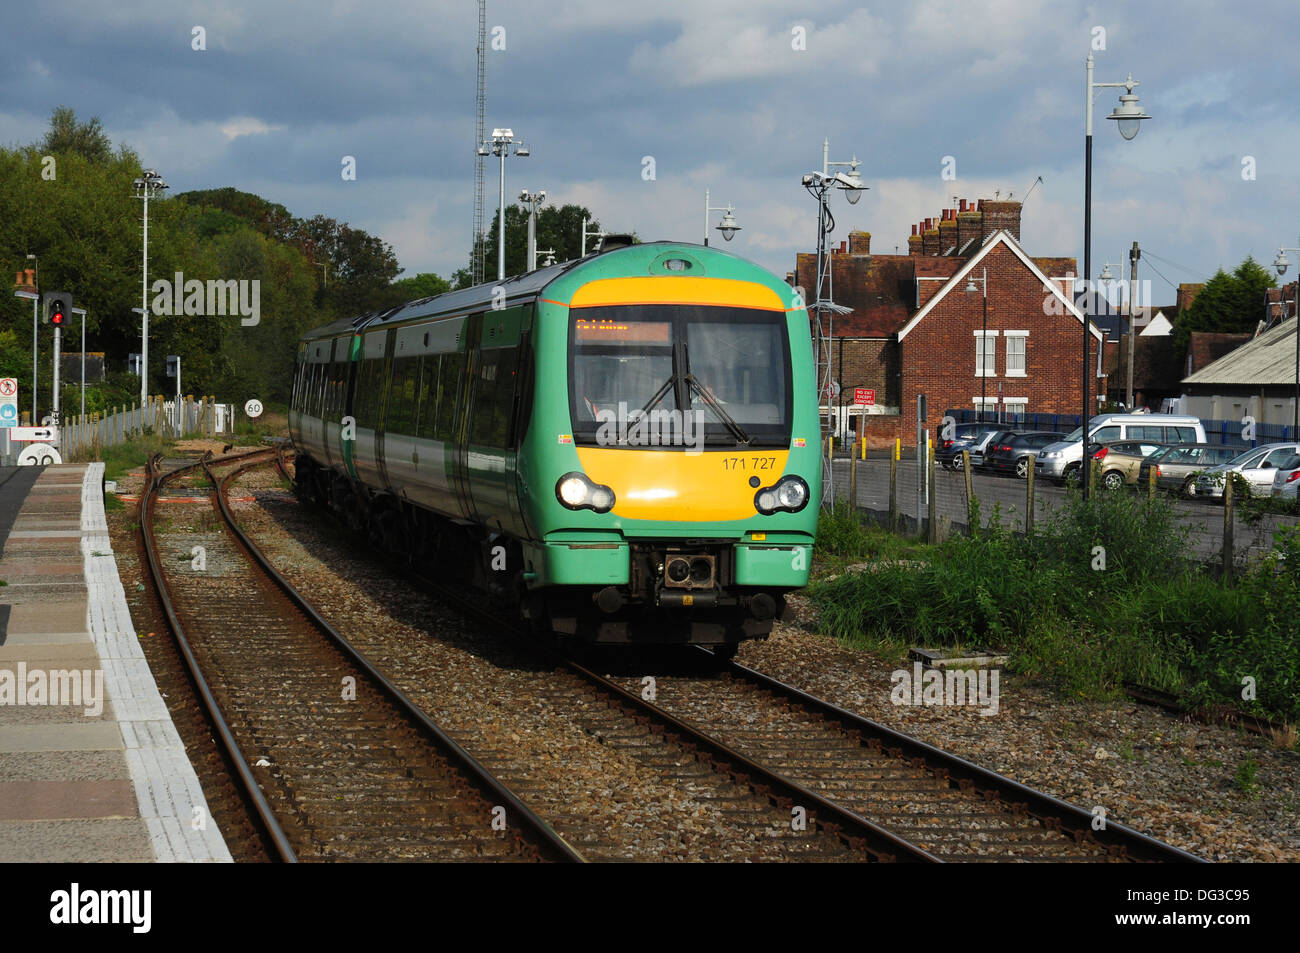 Class 171 Turbostar DMU No 171727 approaching the railway station, Rye, East Sussex, England, UK - Stock Image